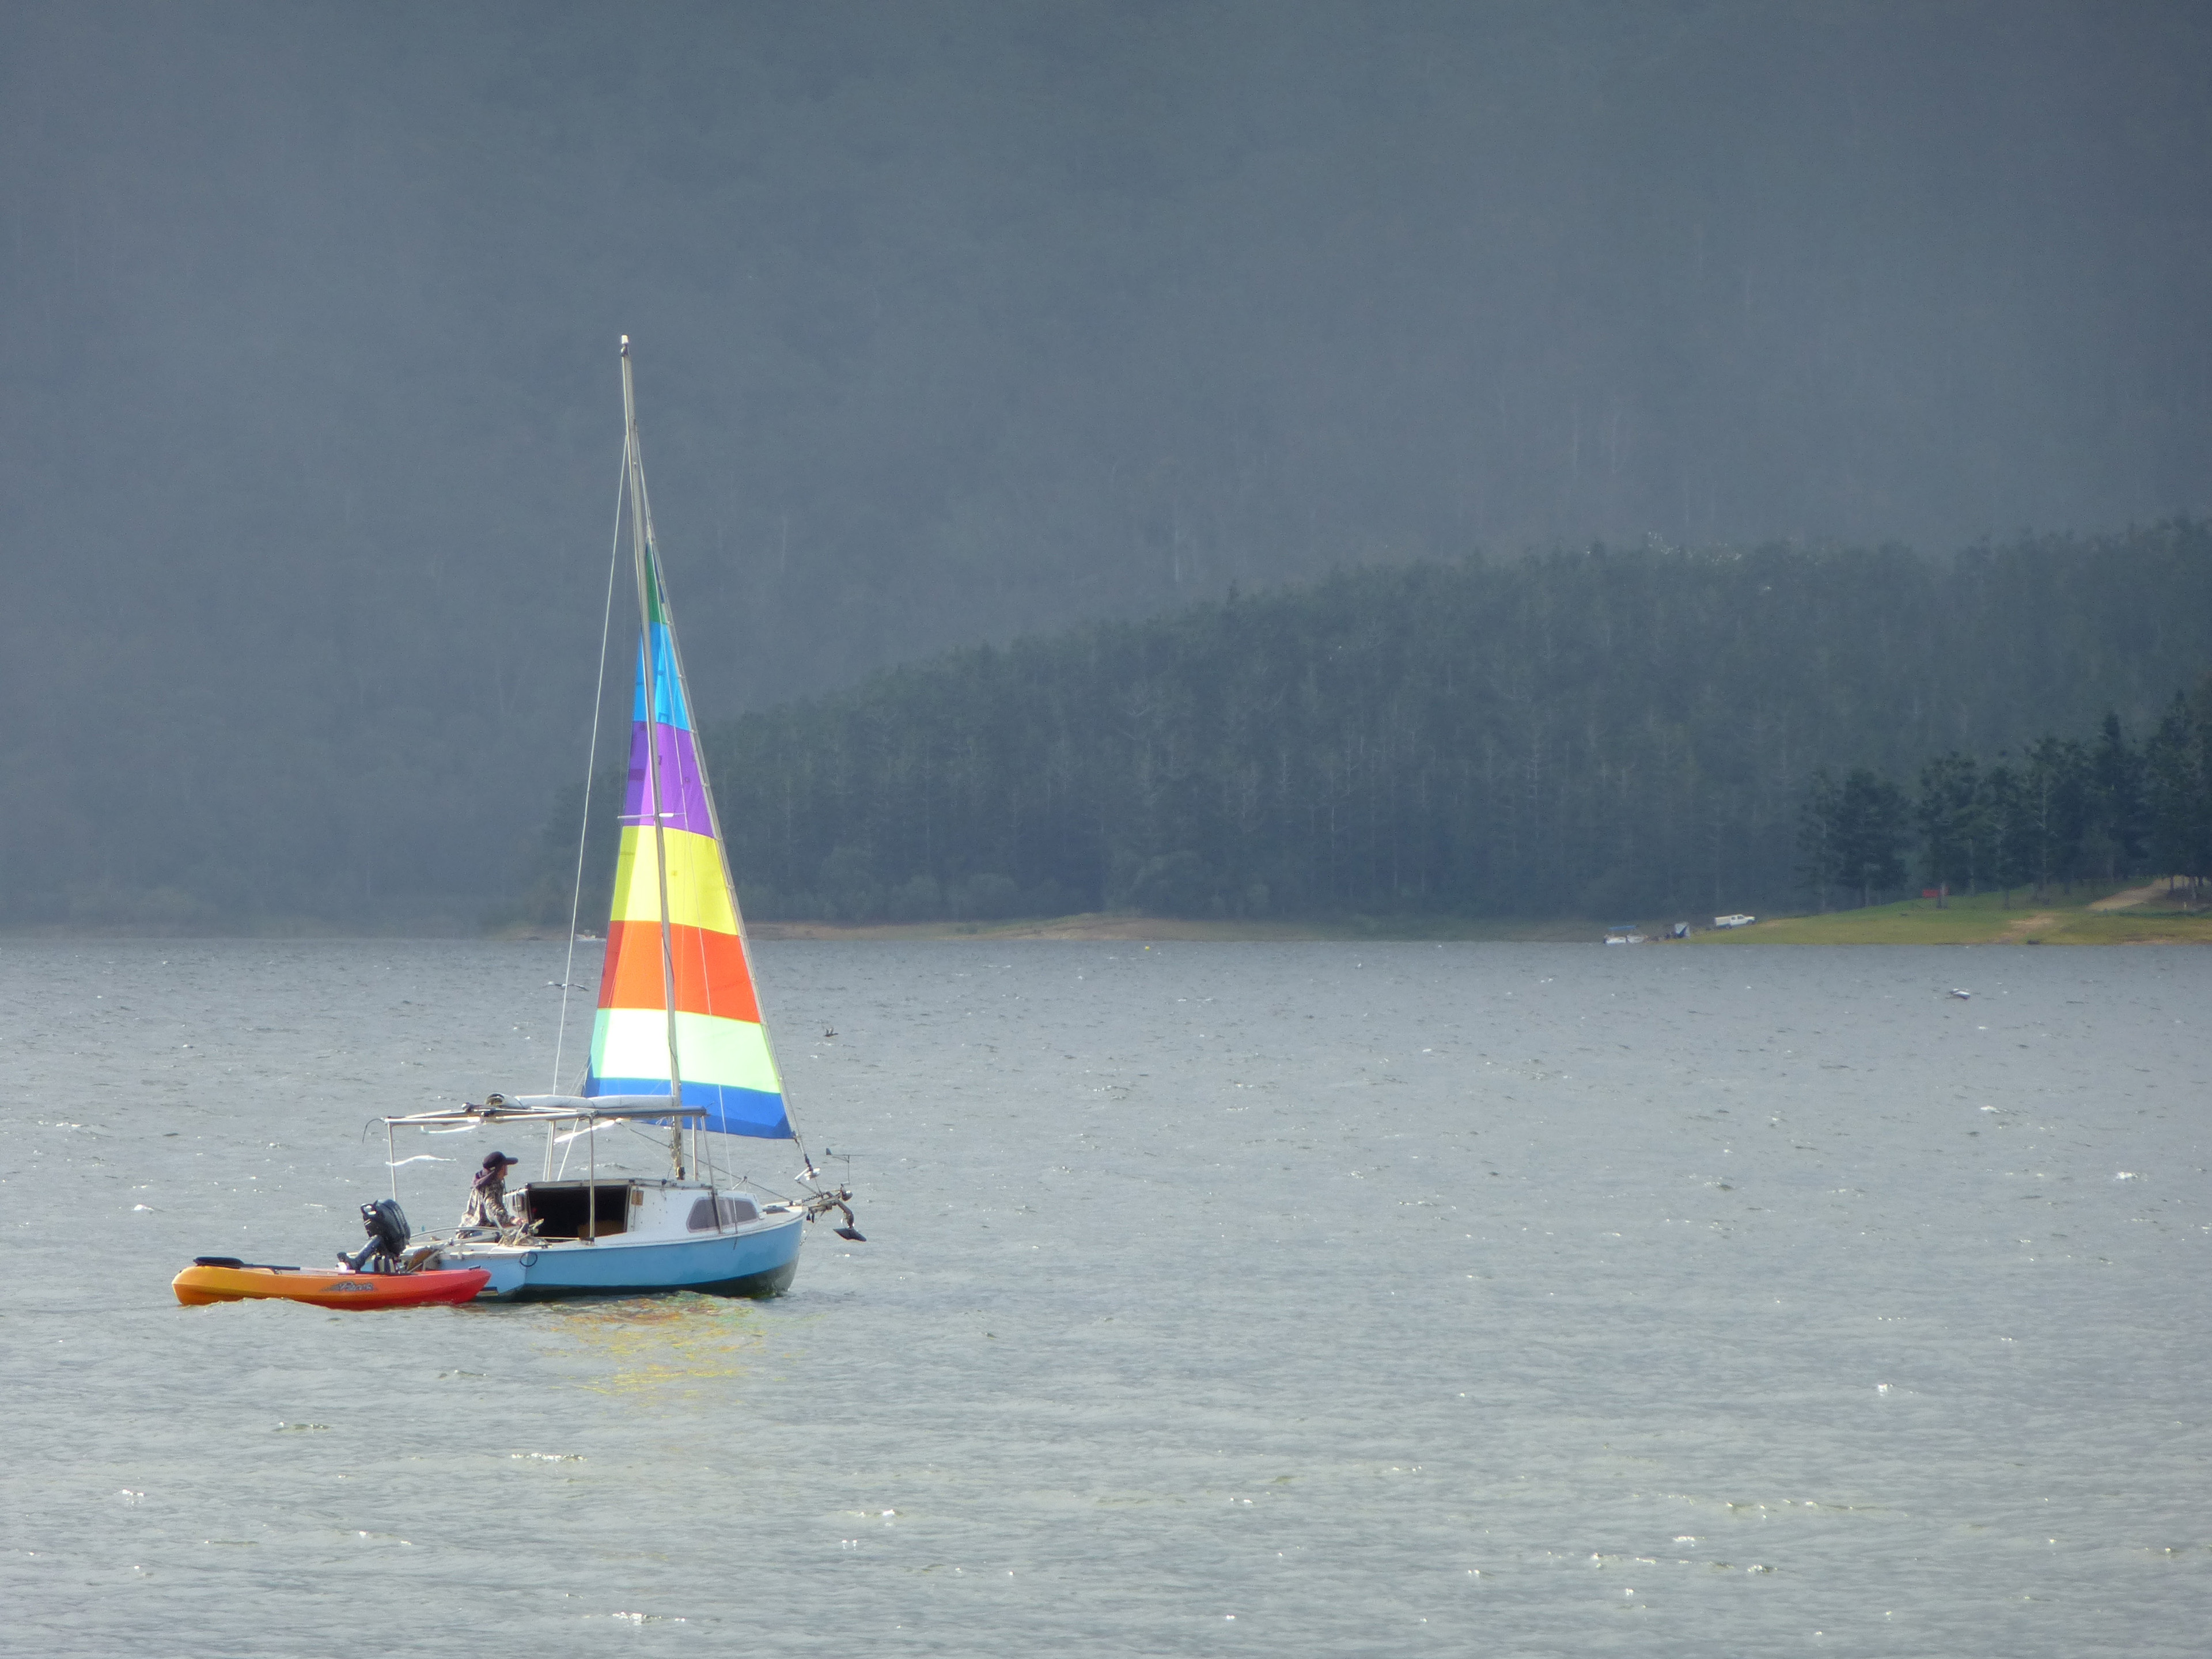 Image of Small sailboat towing a dinghy | Freebie Photography